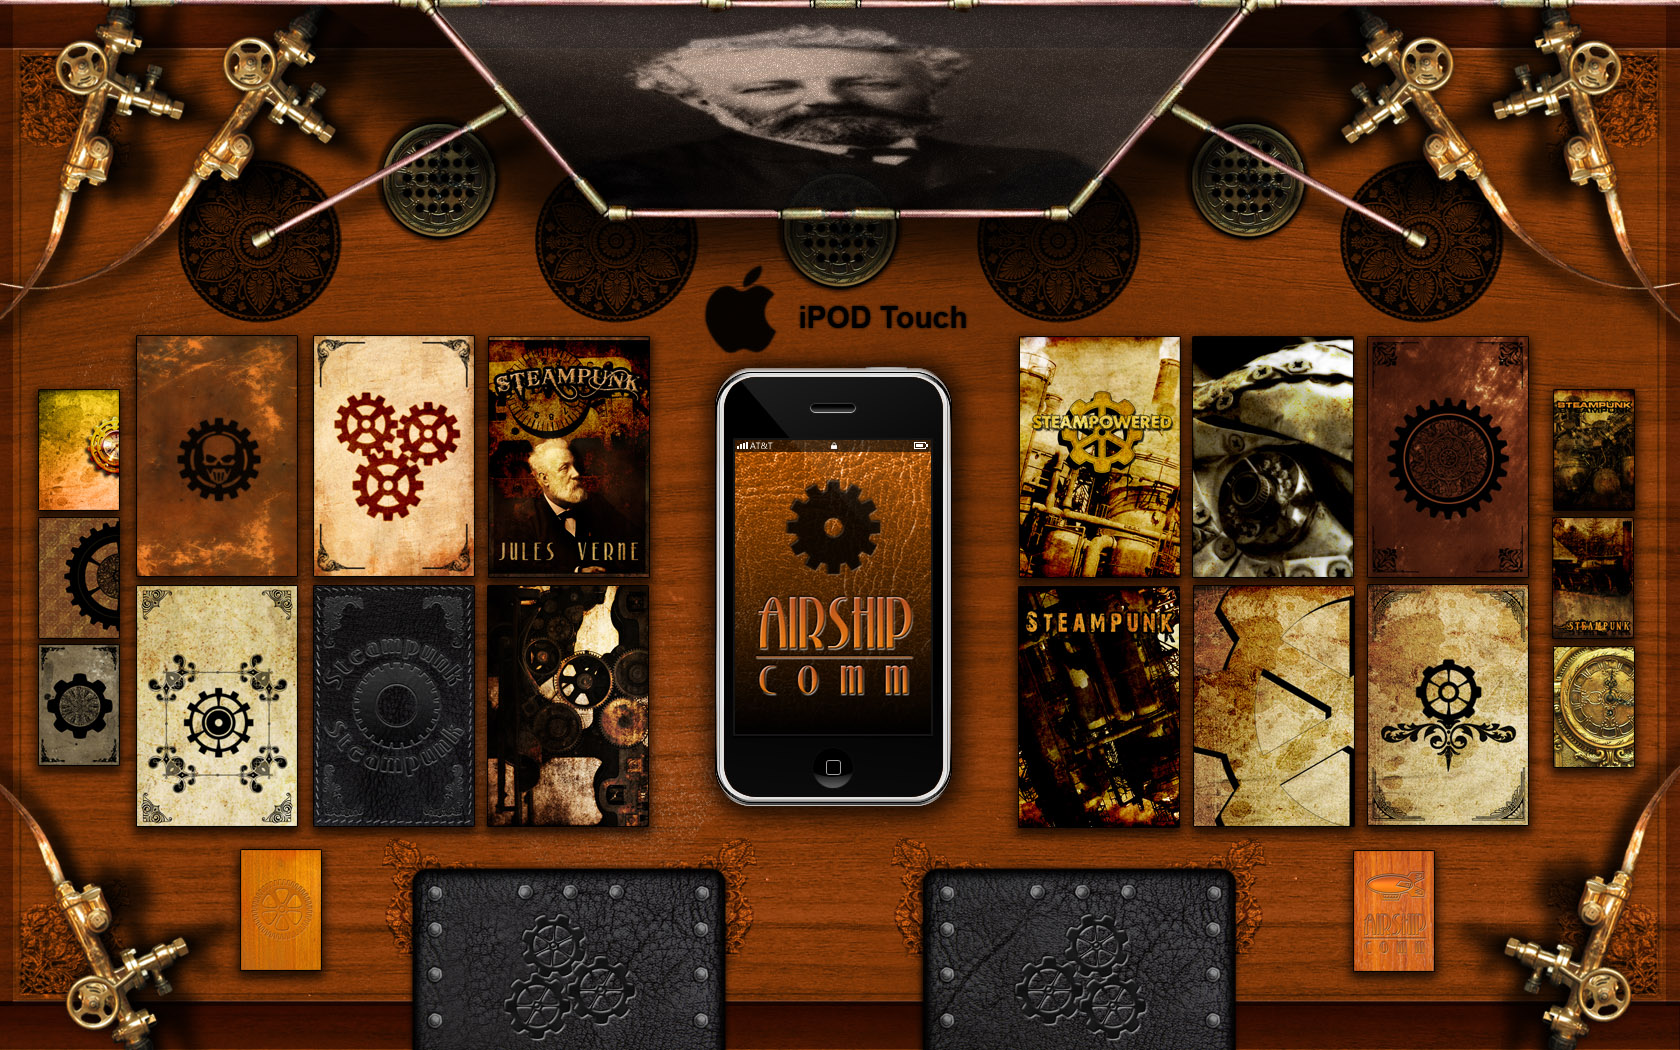 Steampunk theme iPod Touch by inception8 1680x1050